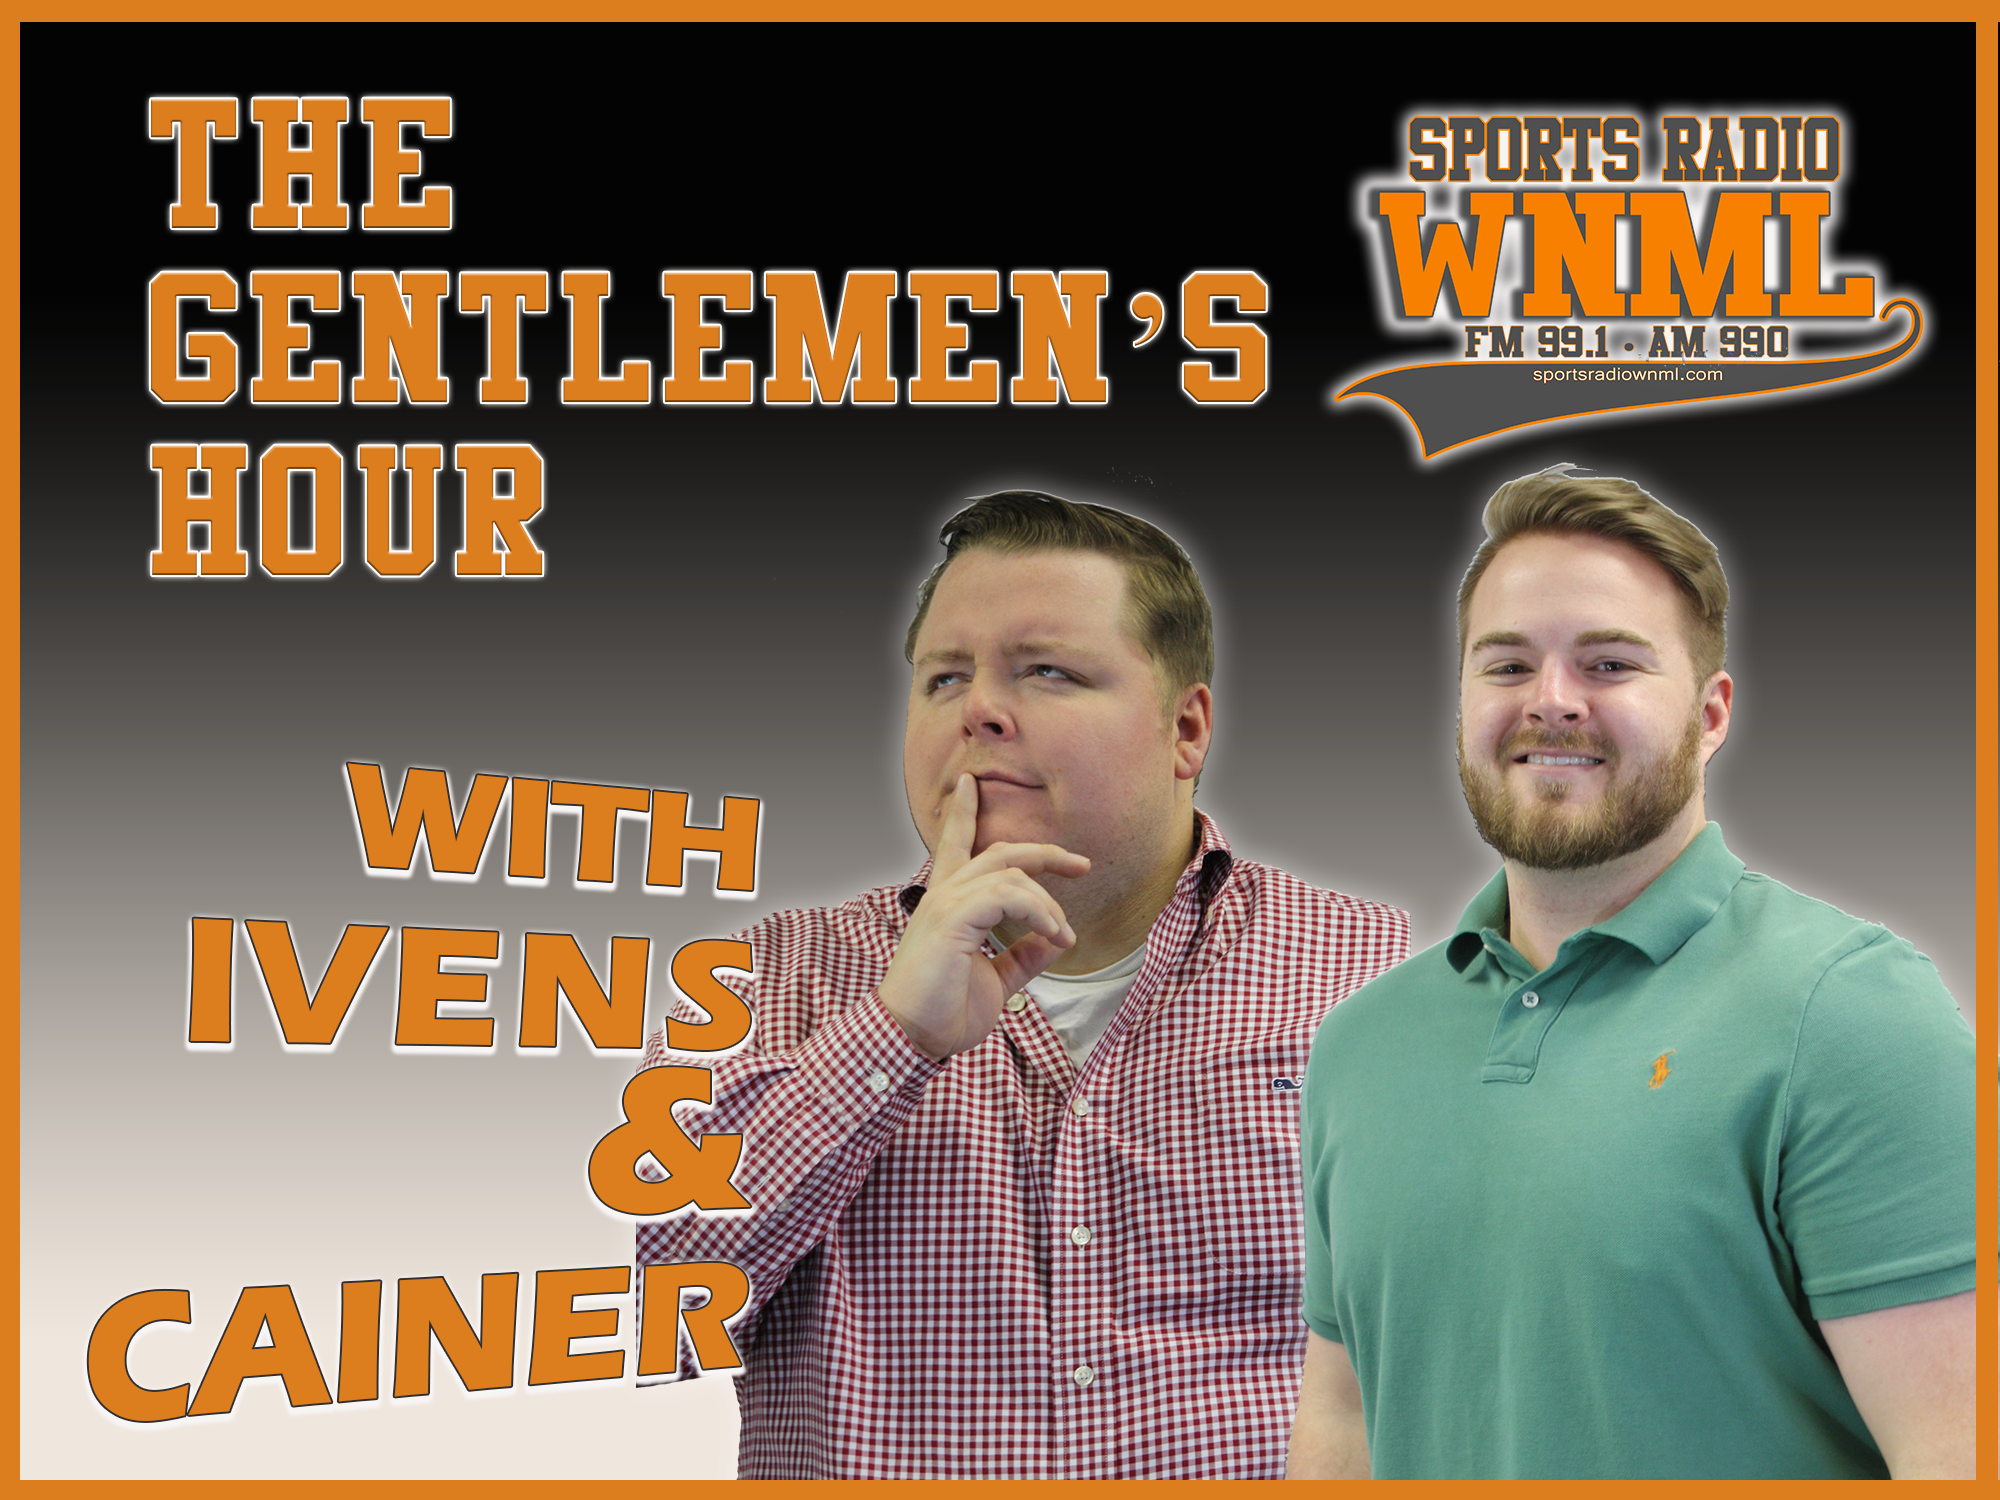 The Gentlemen's Hour Podcast: Episode 27 (4.17.19)